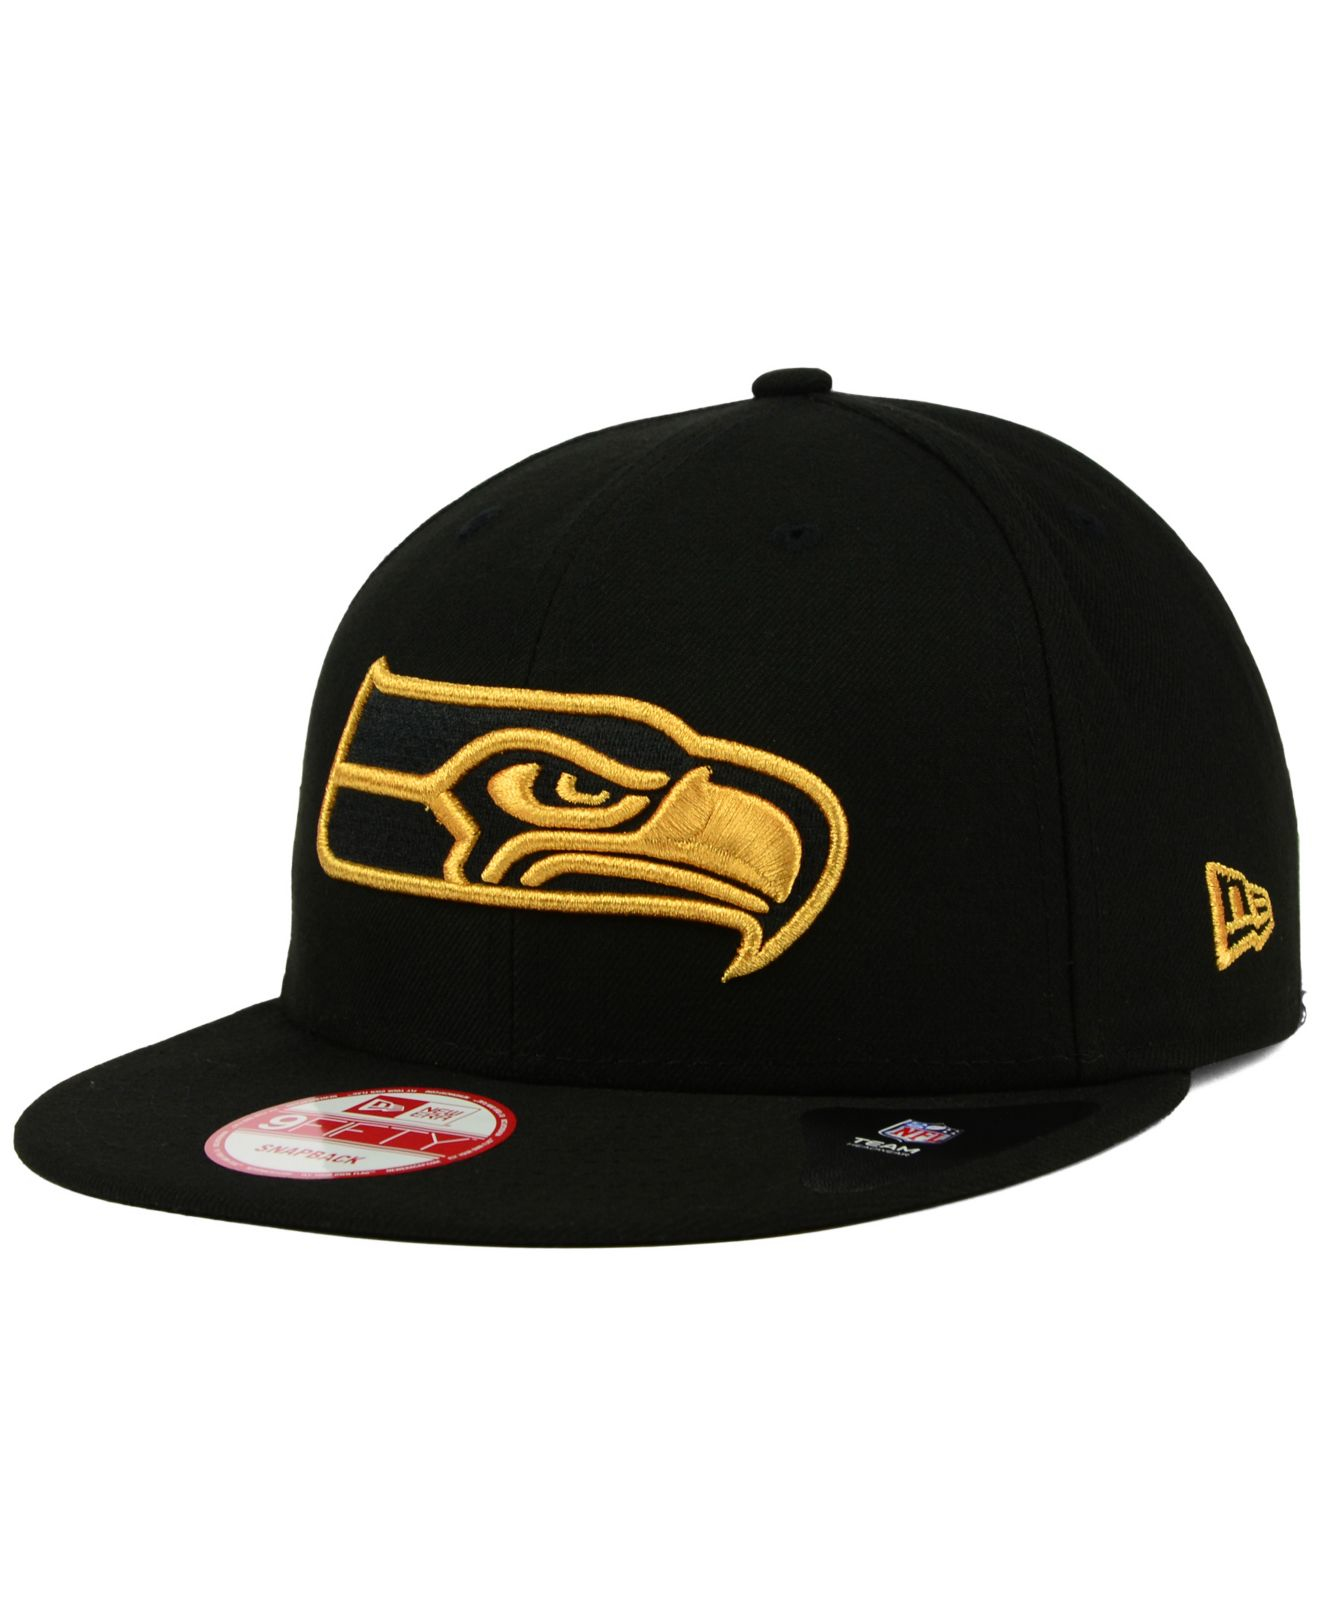 ... norway lyst ktz seattle seahawks black metallic gold 9fifty snapback cap  0aade d11f0 f46cbcf744a0